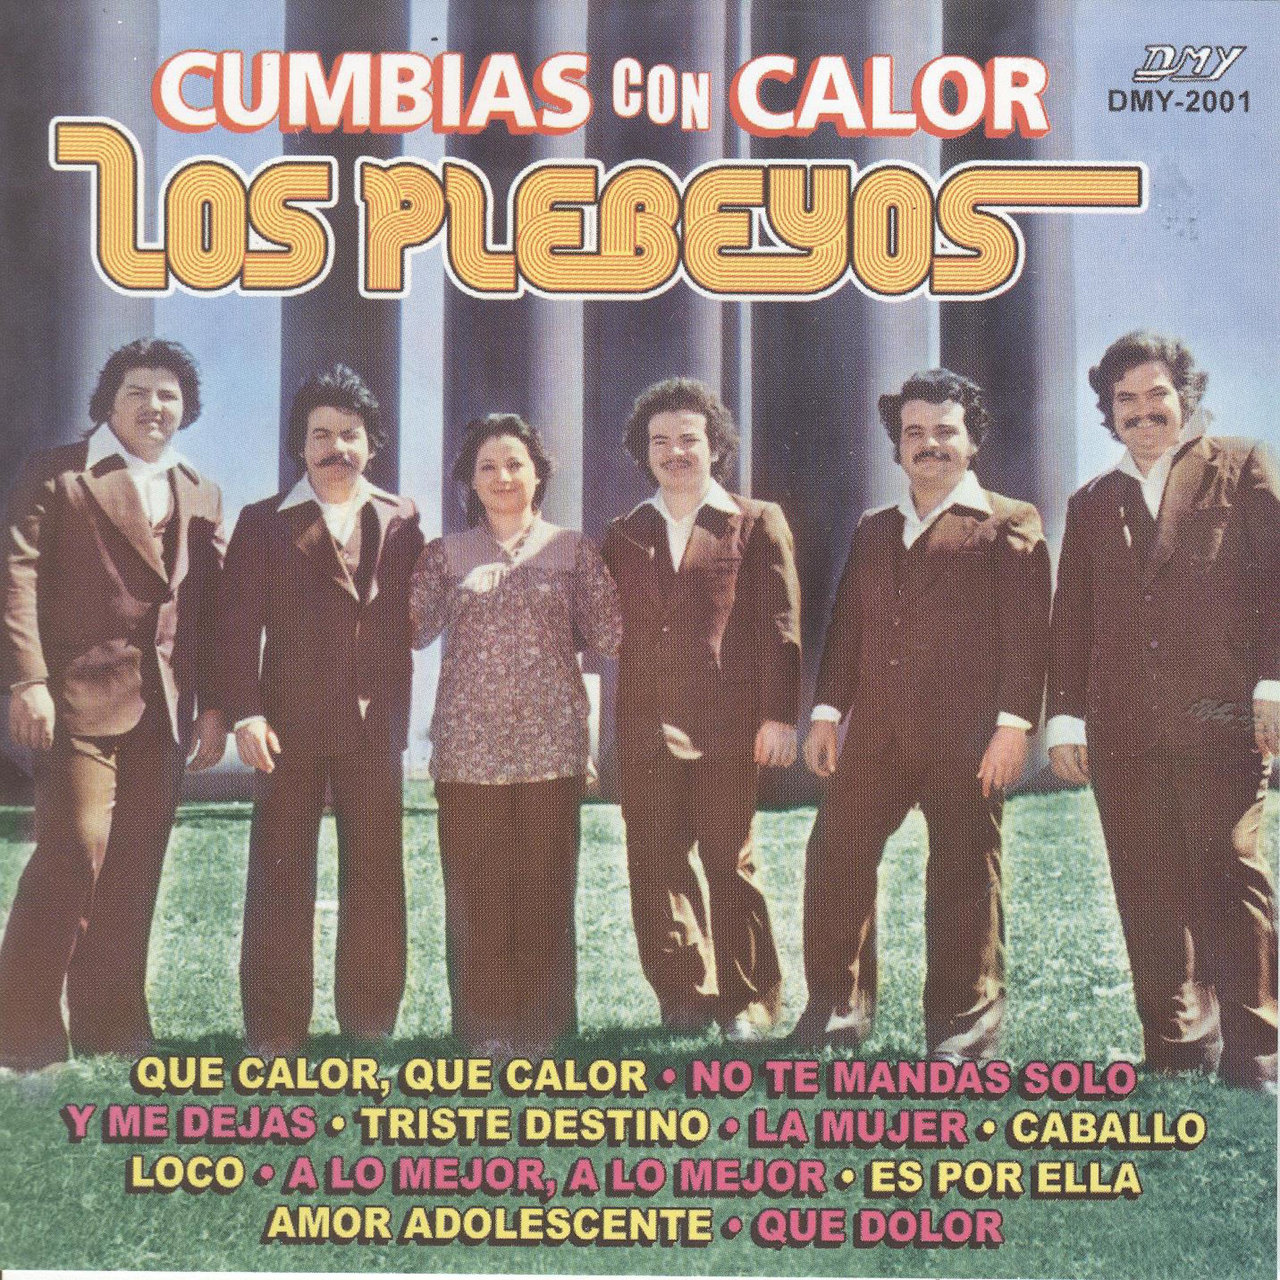 Cumbias Con Calor